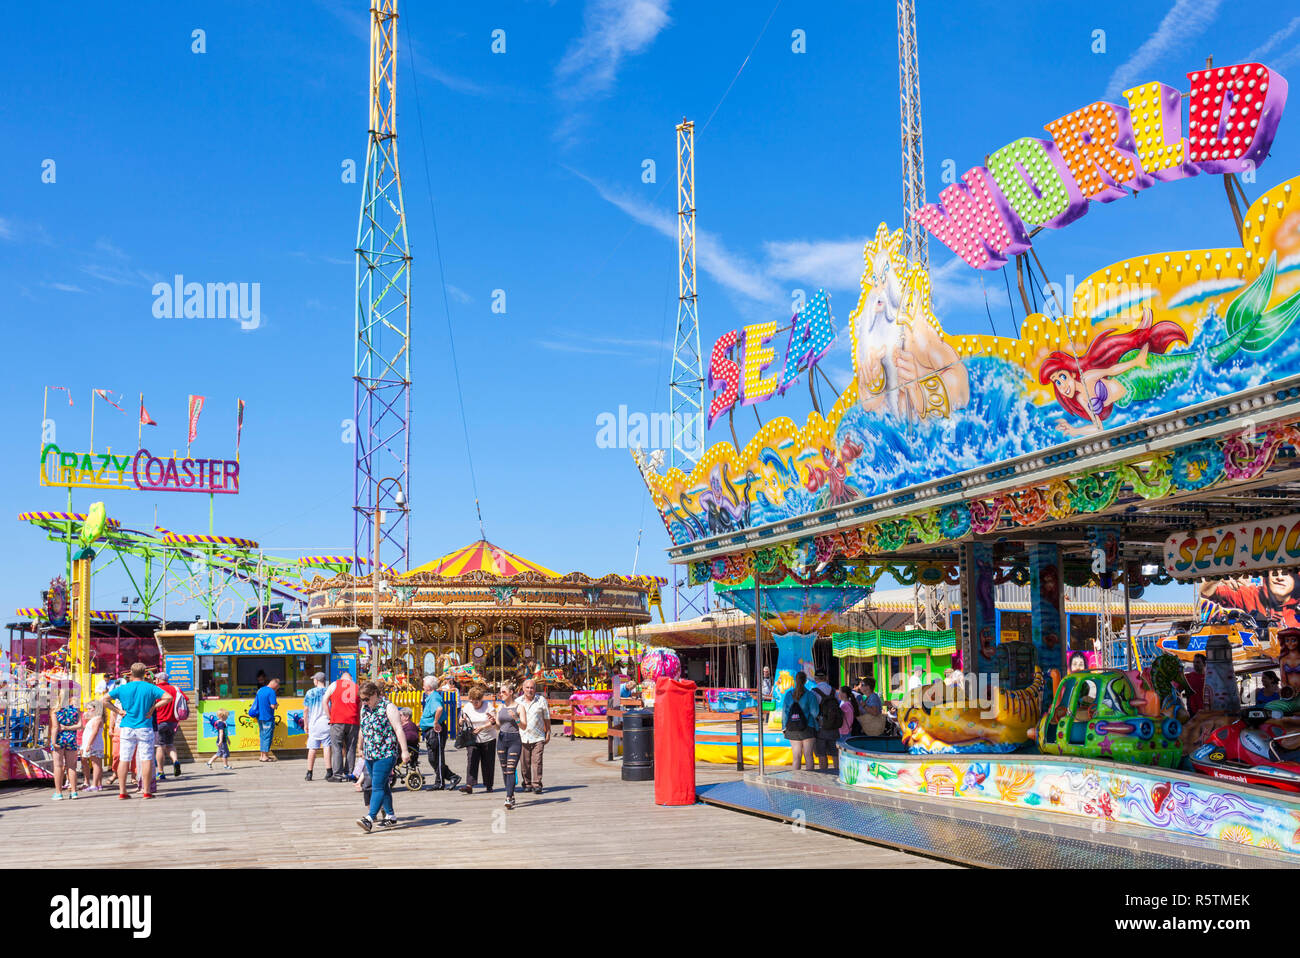 Lots of people on the South Pier fairground rides Adrenalin Zone South Pier Blackpool UK Lancashire England UK GB Europe - Stock Image